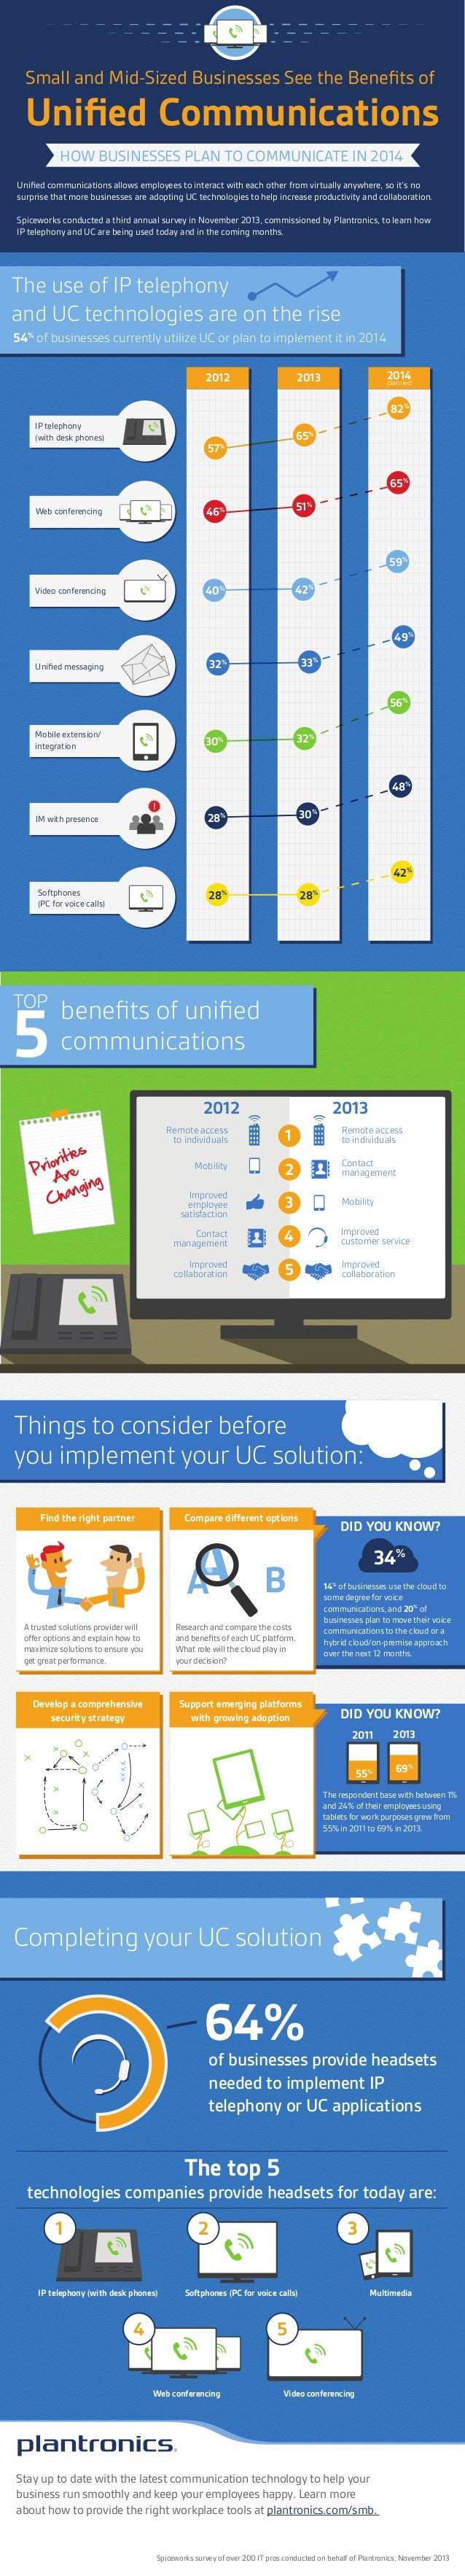 Unified Communications for Small and Mid-Sized Businesses  -  Plantronics